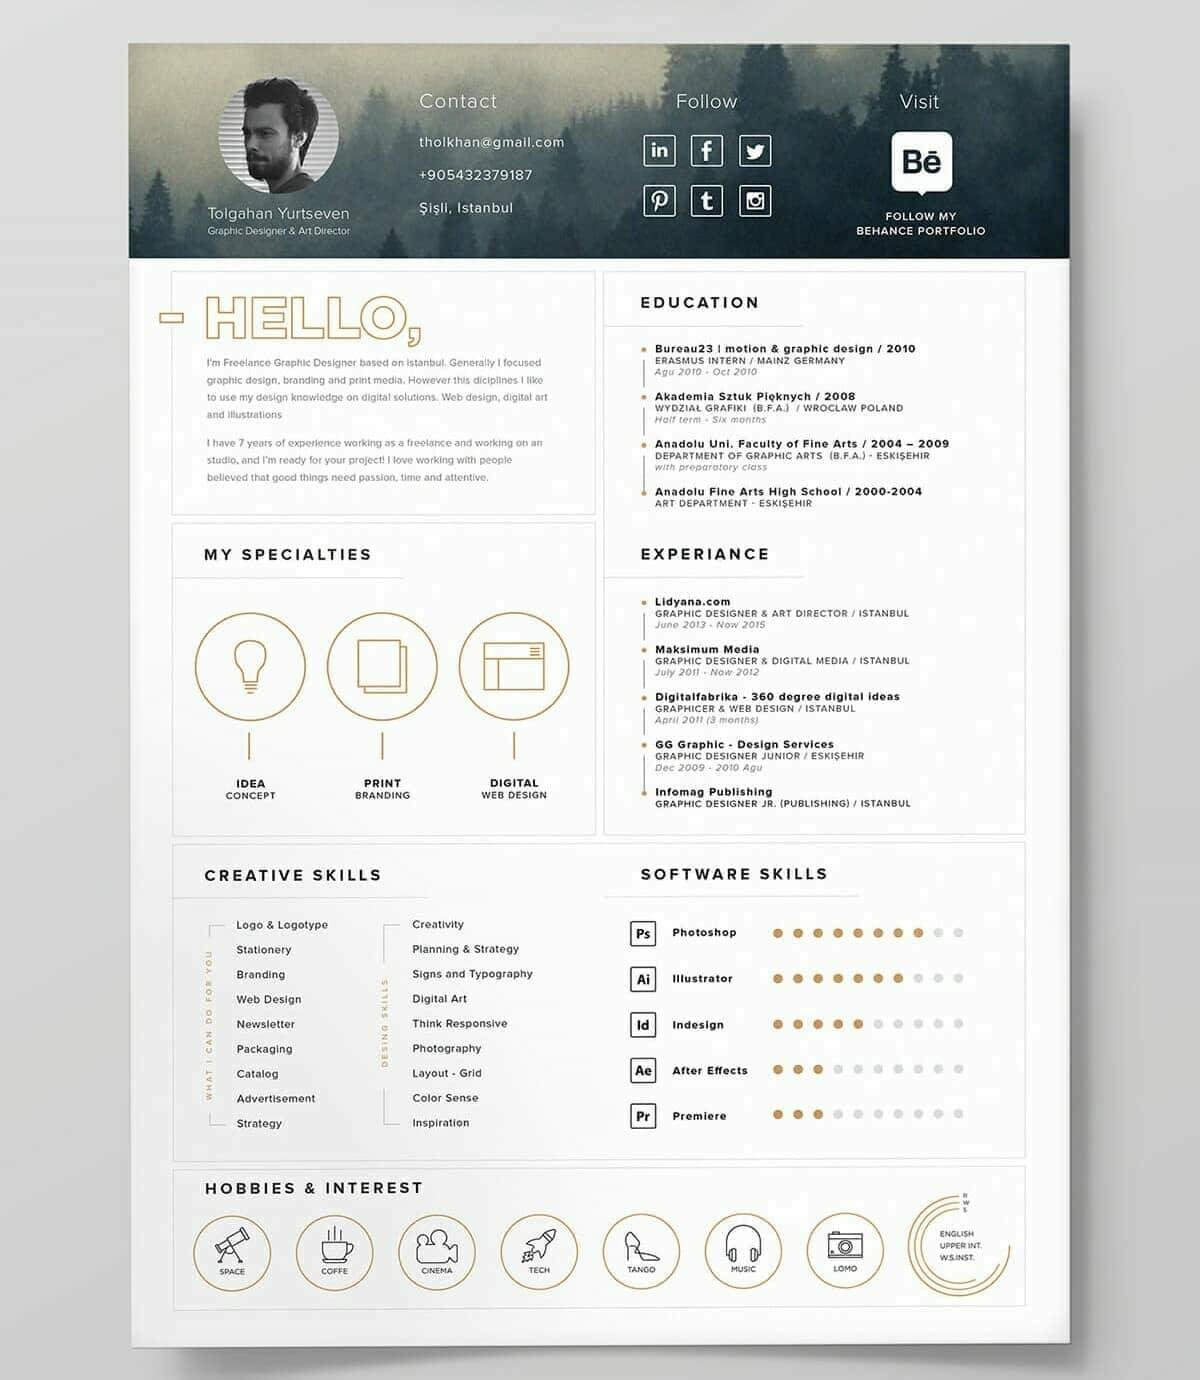 Free Sample Resume Templates Examples: Best Resume Templates: 15 Examples To Download & Use Right